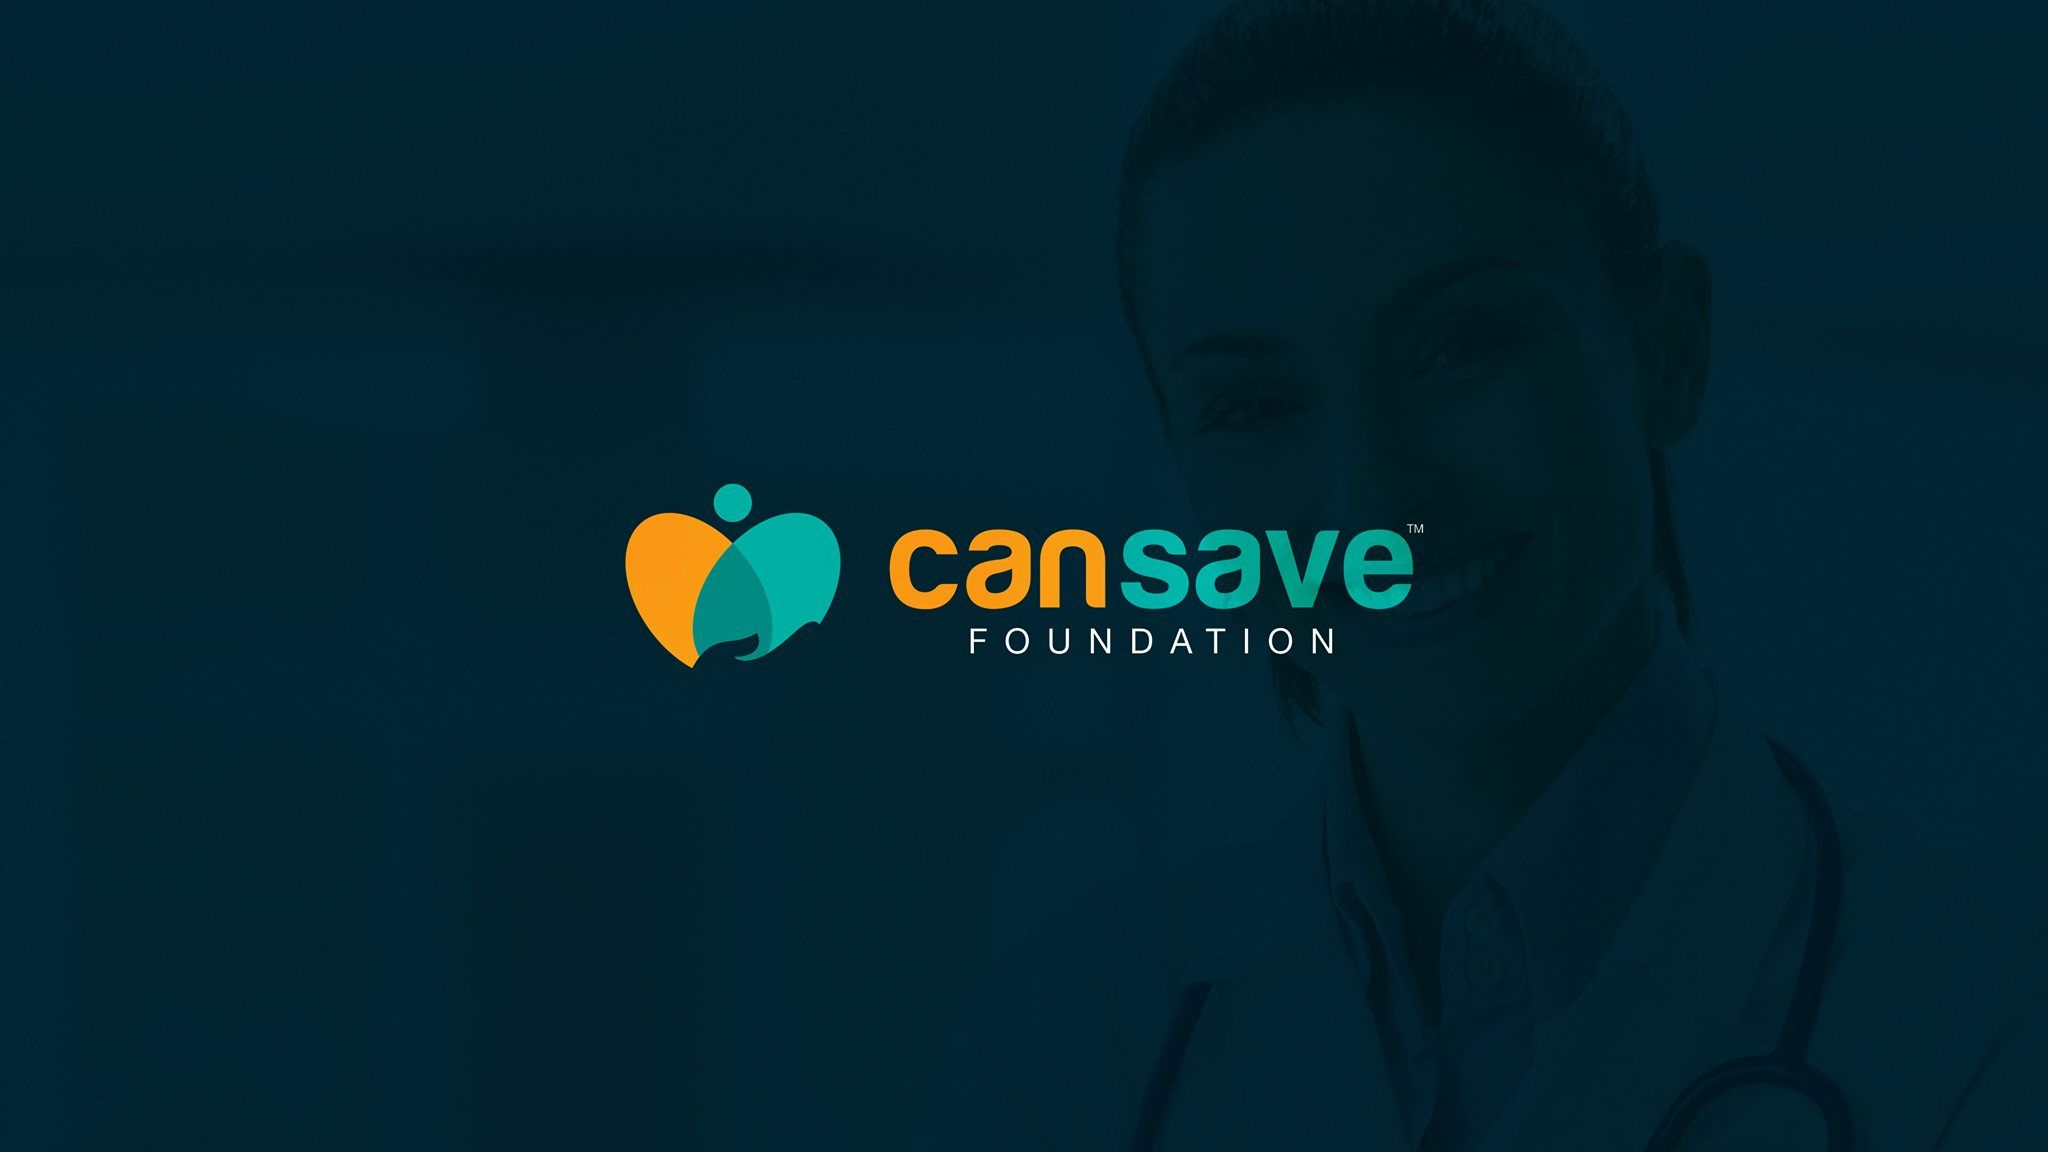 We are recently creating a logo for Cansave Foundation We create a logo exude positive vibes So that patients should feel safe and secure in your care The logo conveys su...